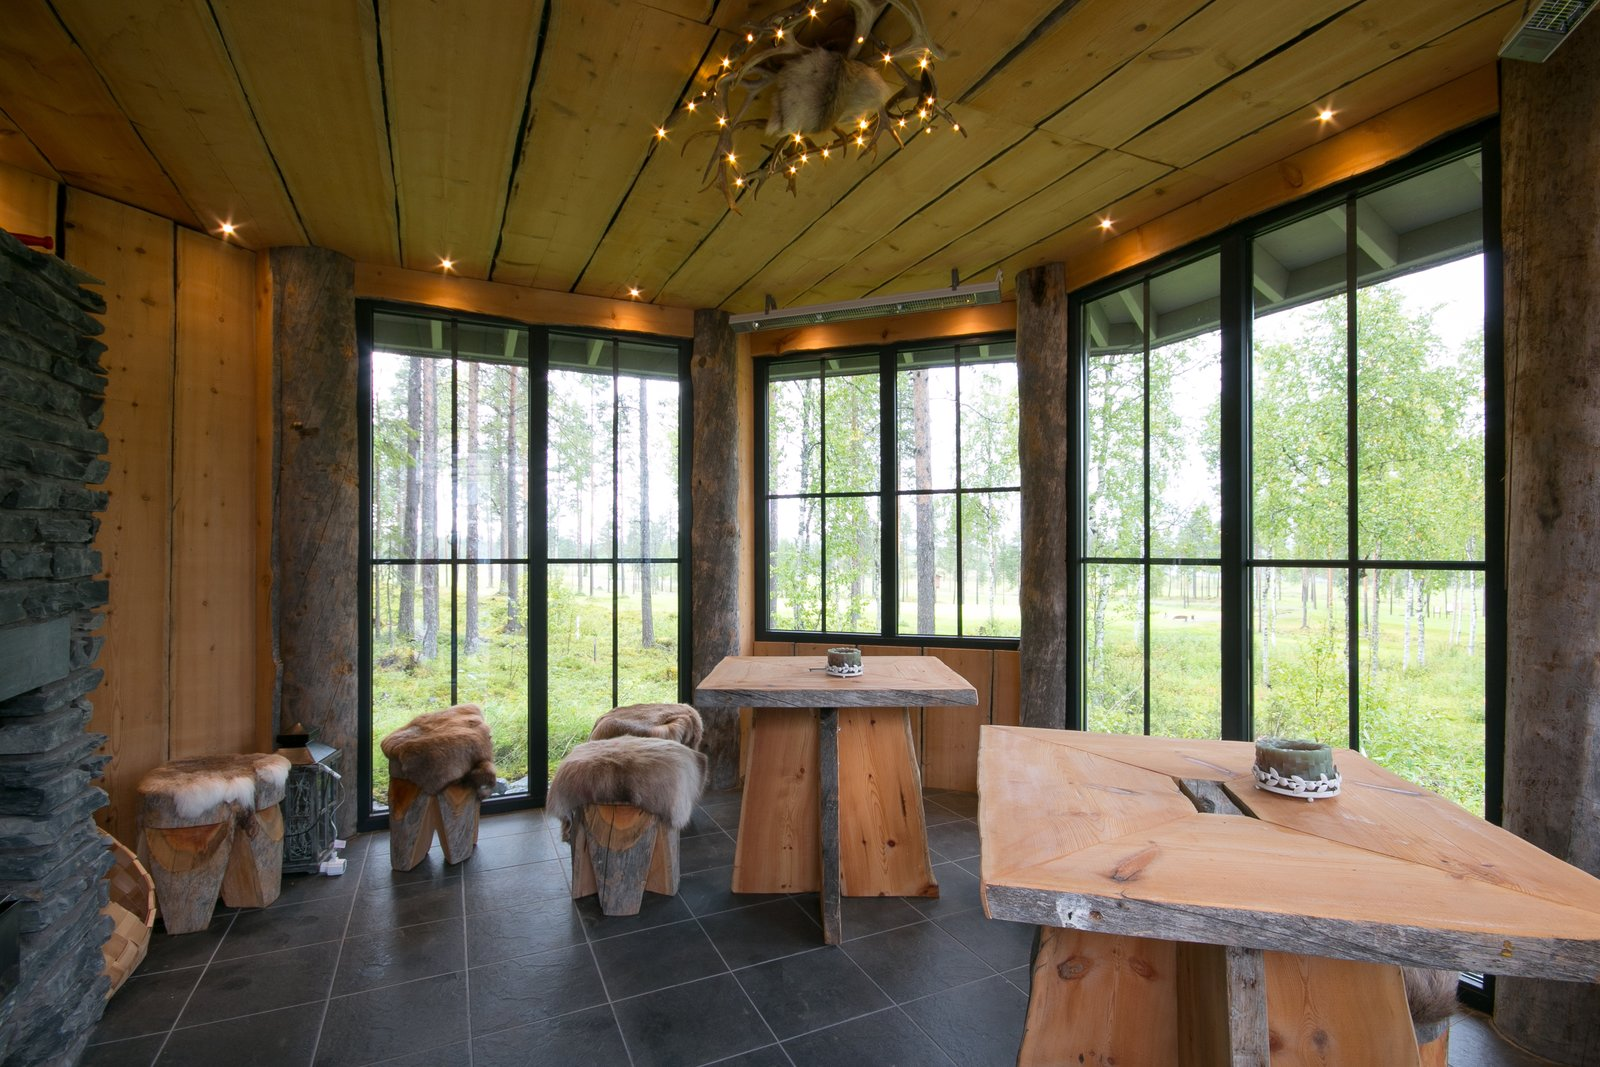 Photo 1 of 8 in Winter Is Coming. Why Not Buy This Log Cabin–Style Villa in Finland?